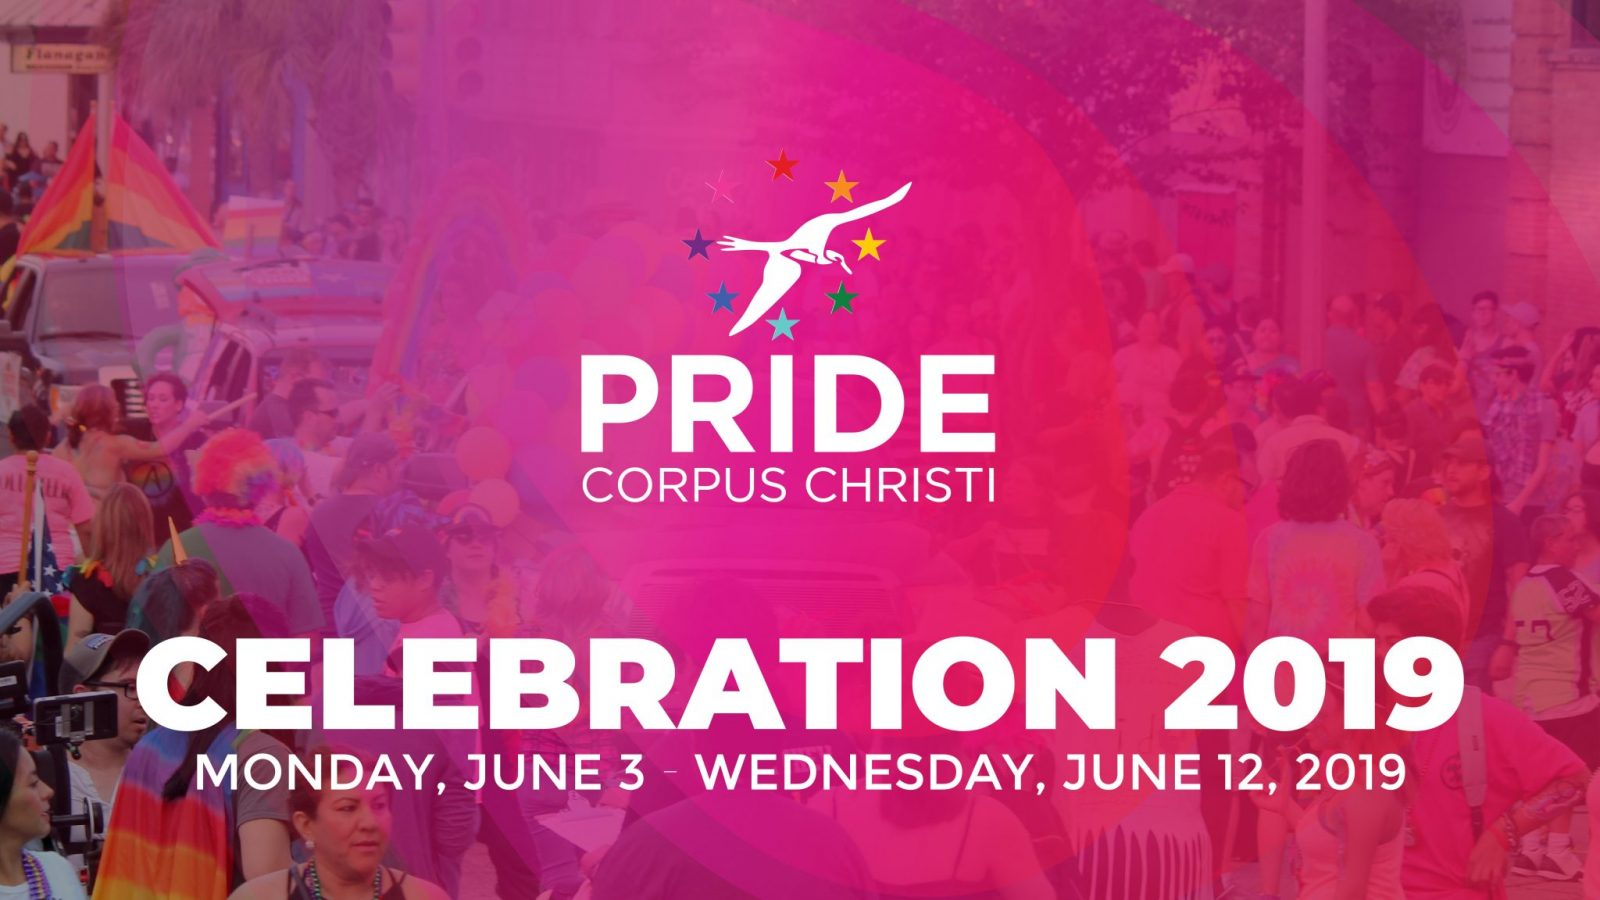 Announcing 2019 PRIDE Corpus Christi Celebration